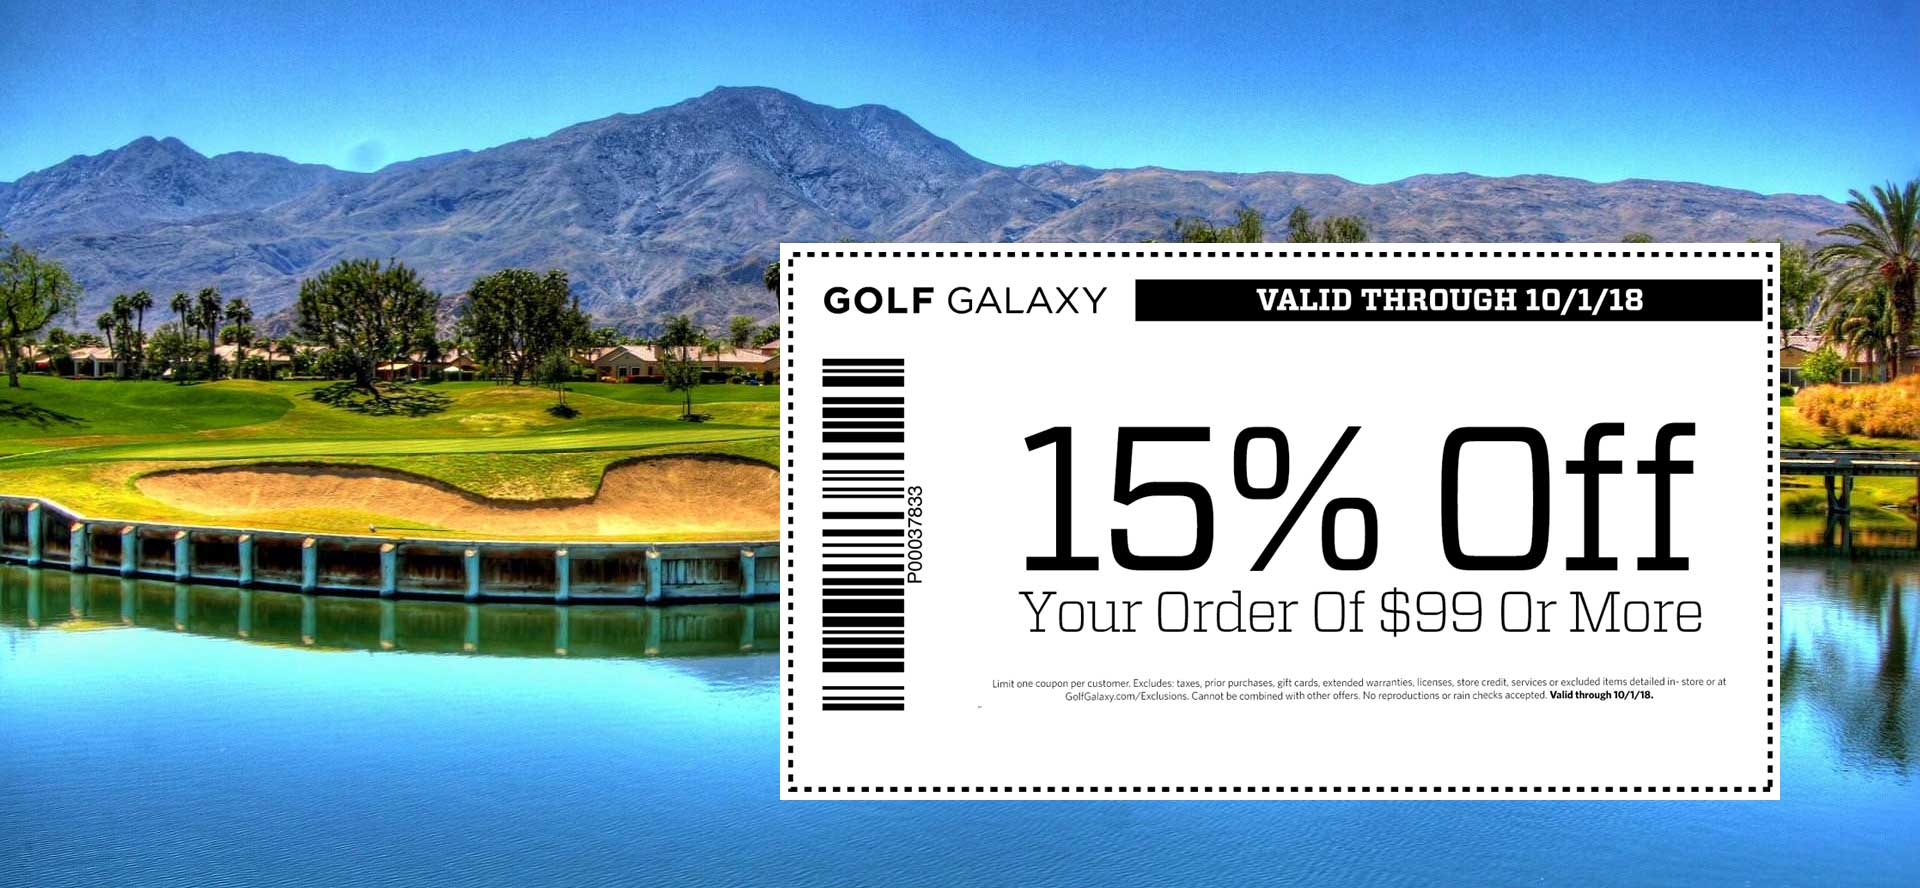 GolfGalaxy.com Promo Coupon 15% off $99 at Golf Galaxy